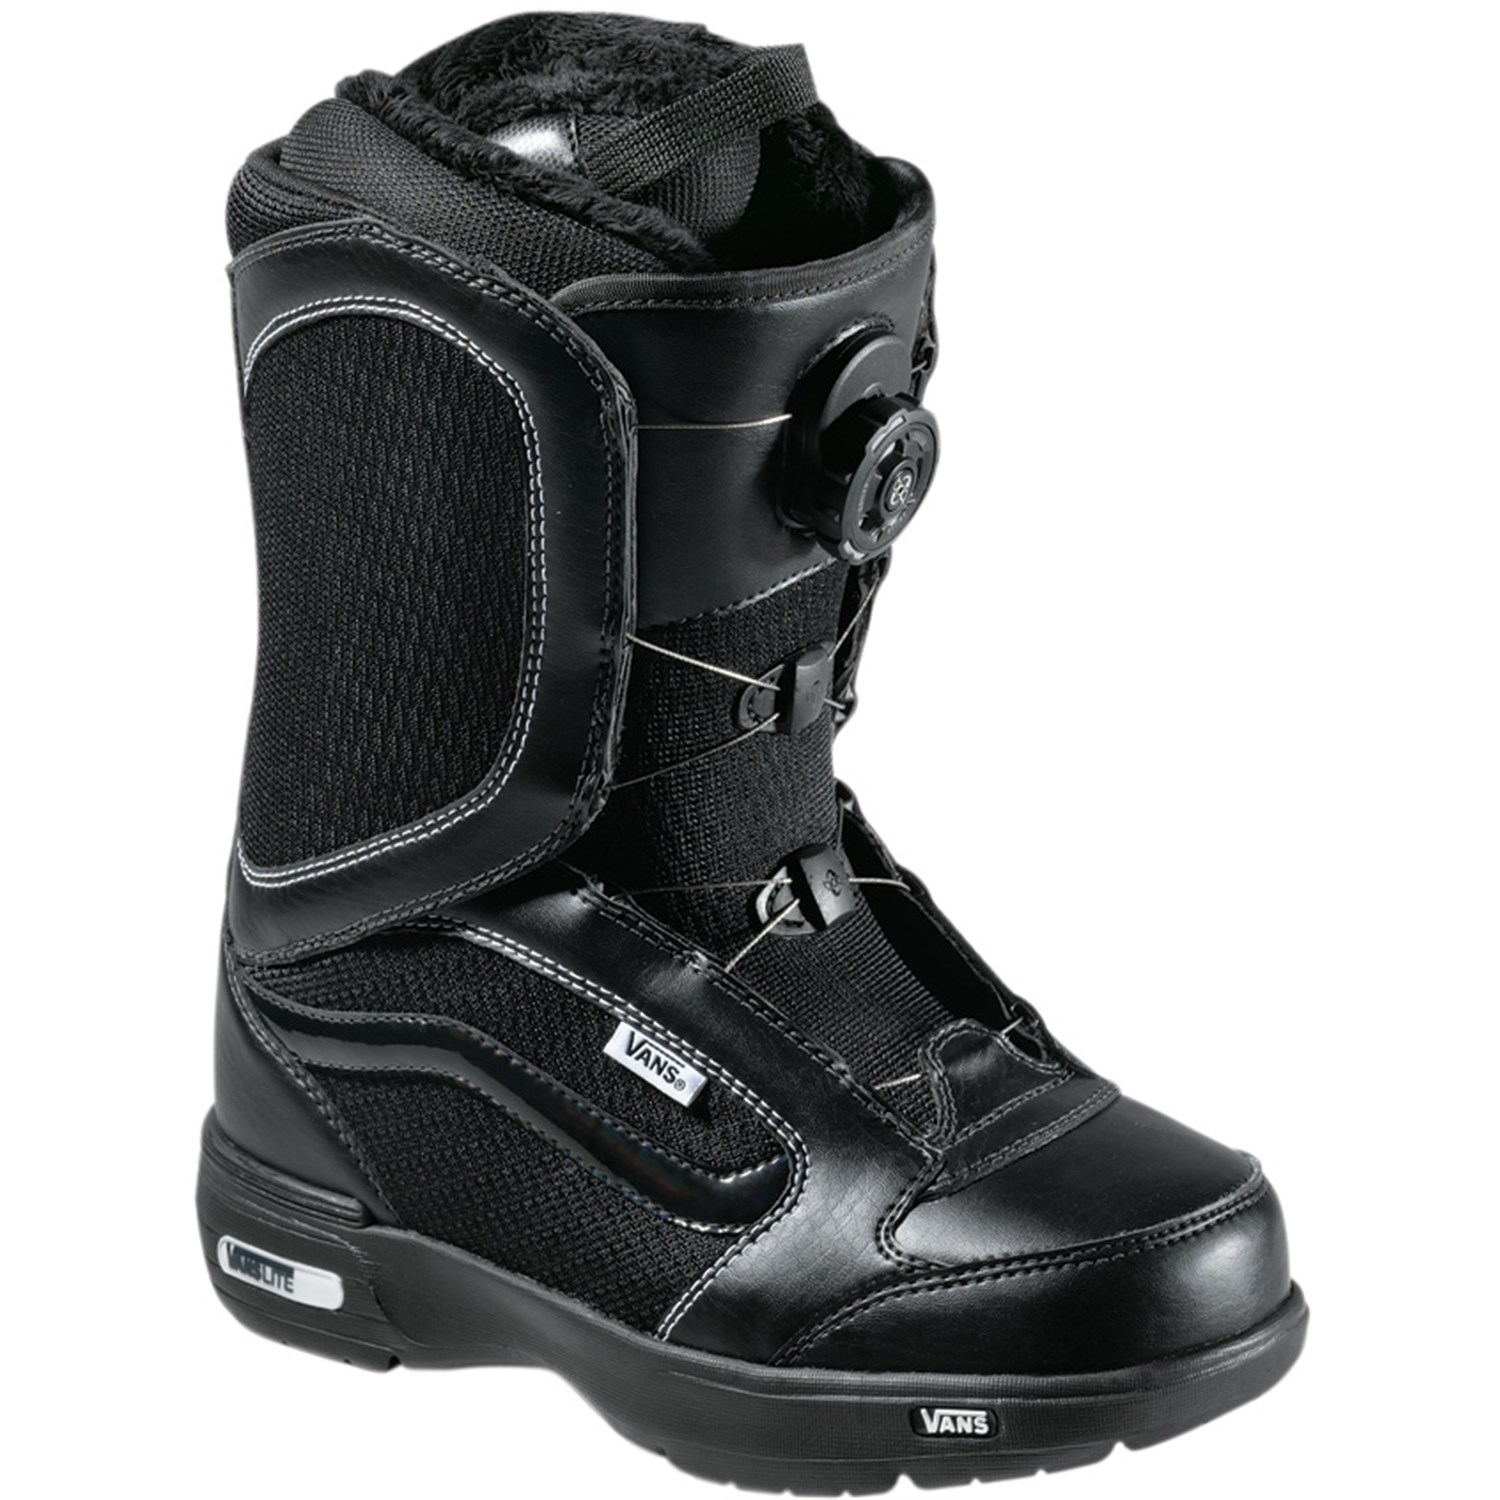 Luxury Sporting Goods Gt Skiing Amp Snowboarding Gt Snowboarding Gt Boots